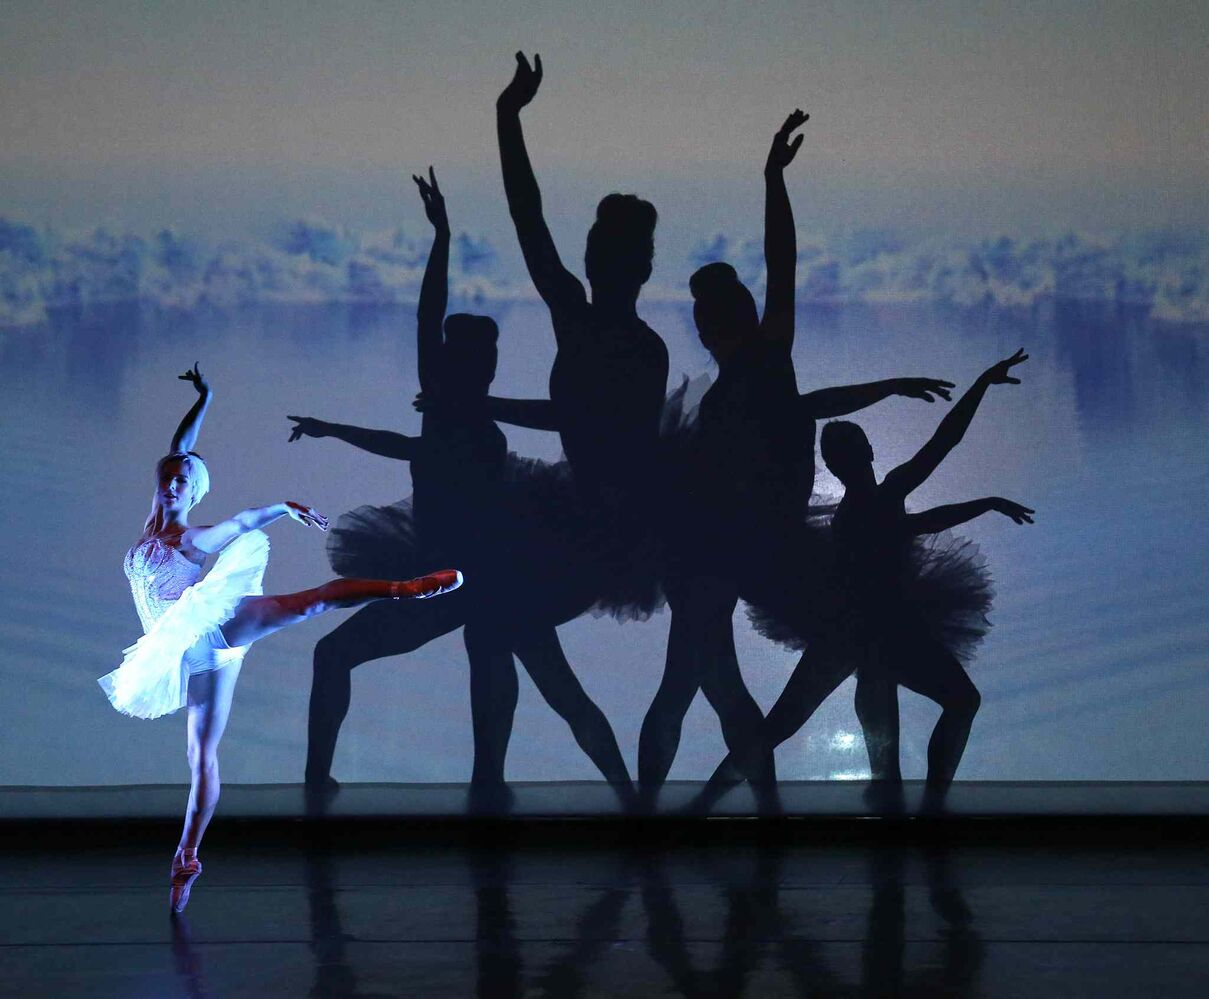 Le Ombré performed its magic with the Winnipeg Symphony Orchestra at the Centennial Concert Hall Saturday night. The troupe features acrobats and dancers using their silhouettes to create shadow art on both sides of a large screen.